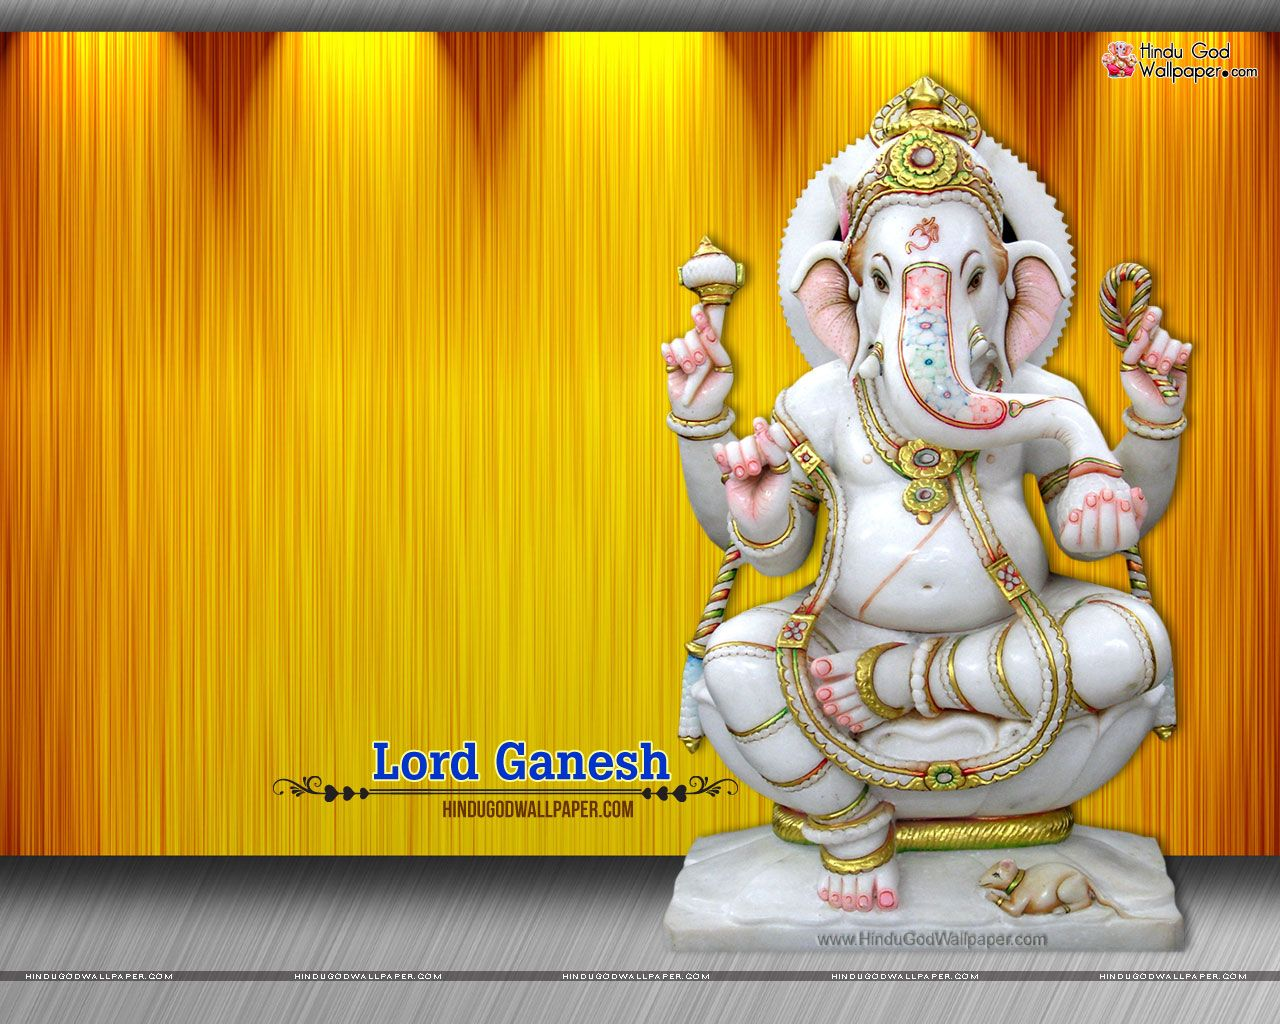 Ganesh murti wallpapers photos images download murti statue ganesh murti wallpapers photos images download thecheapjerseys Choice Image